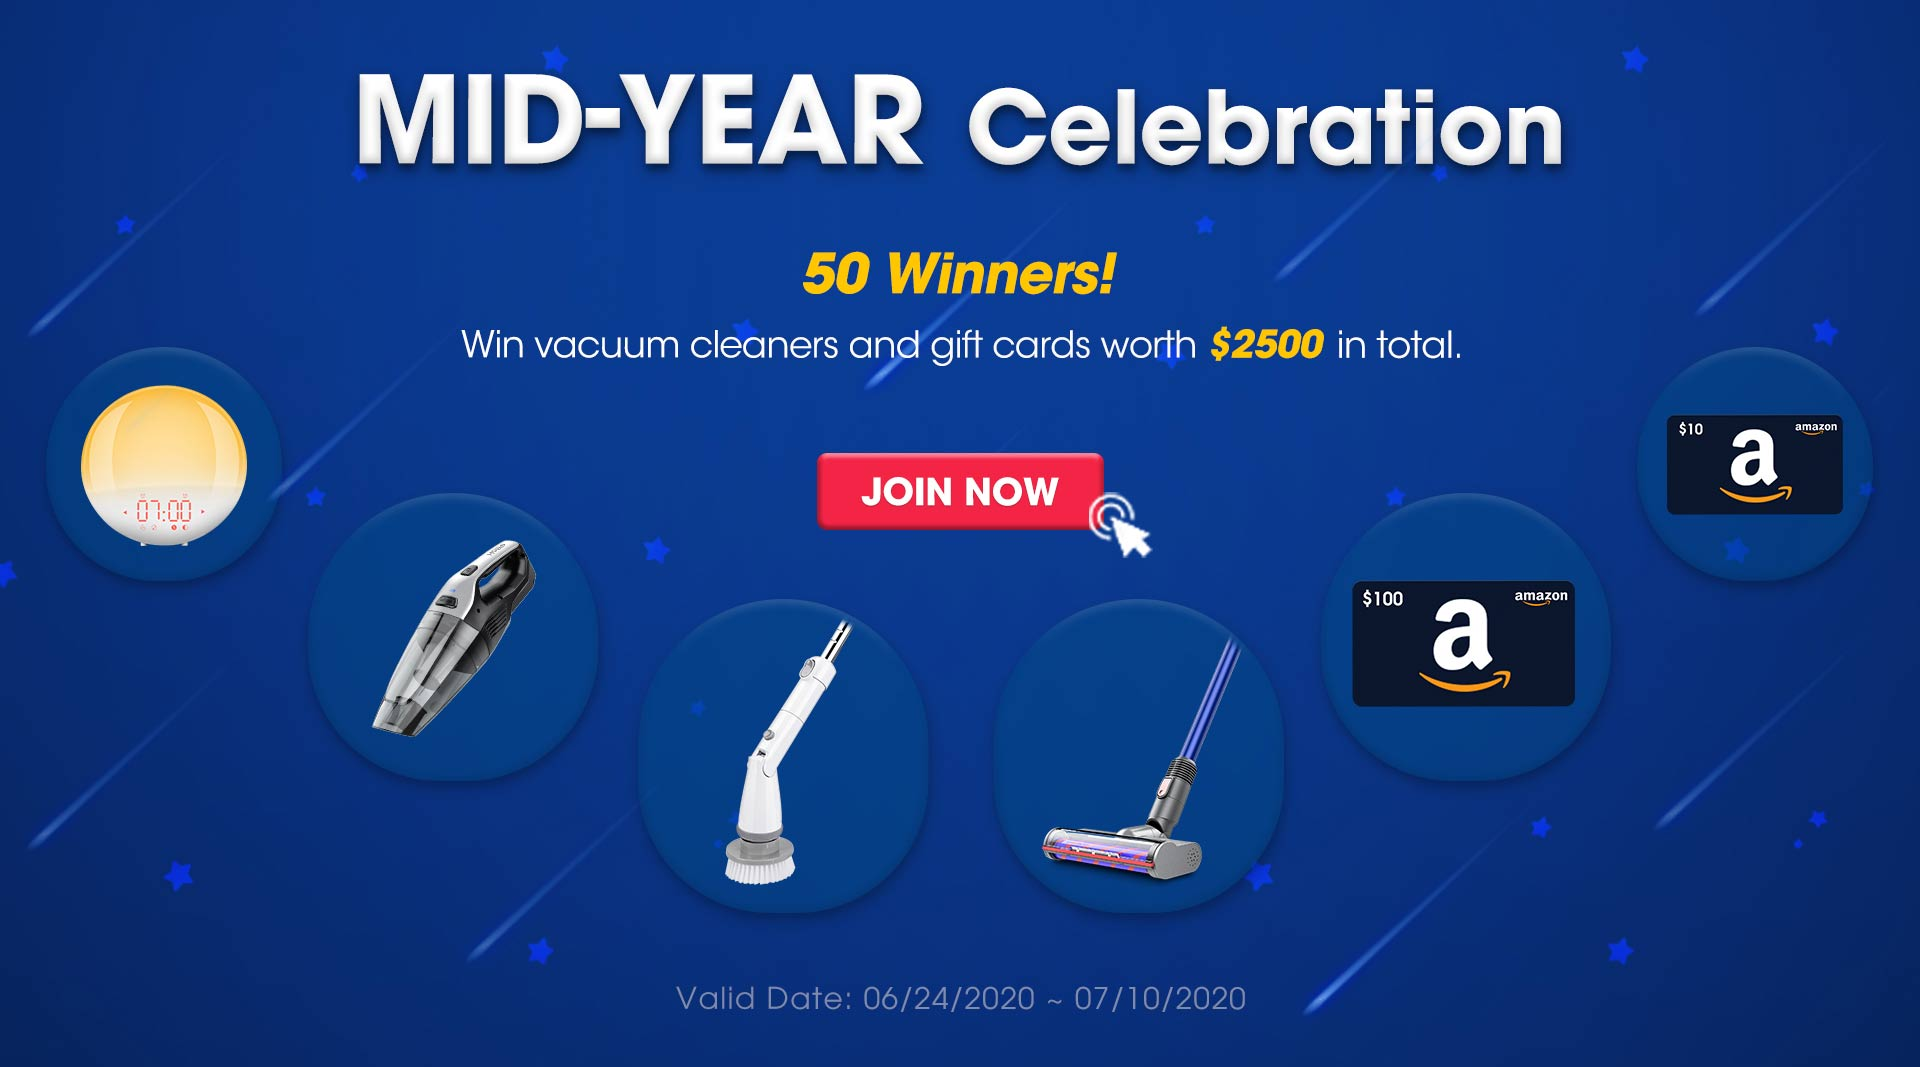 slot game to win holife free vacuums,mid-year event